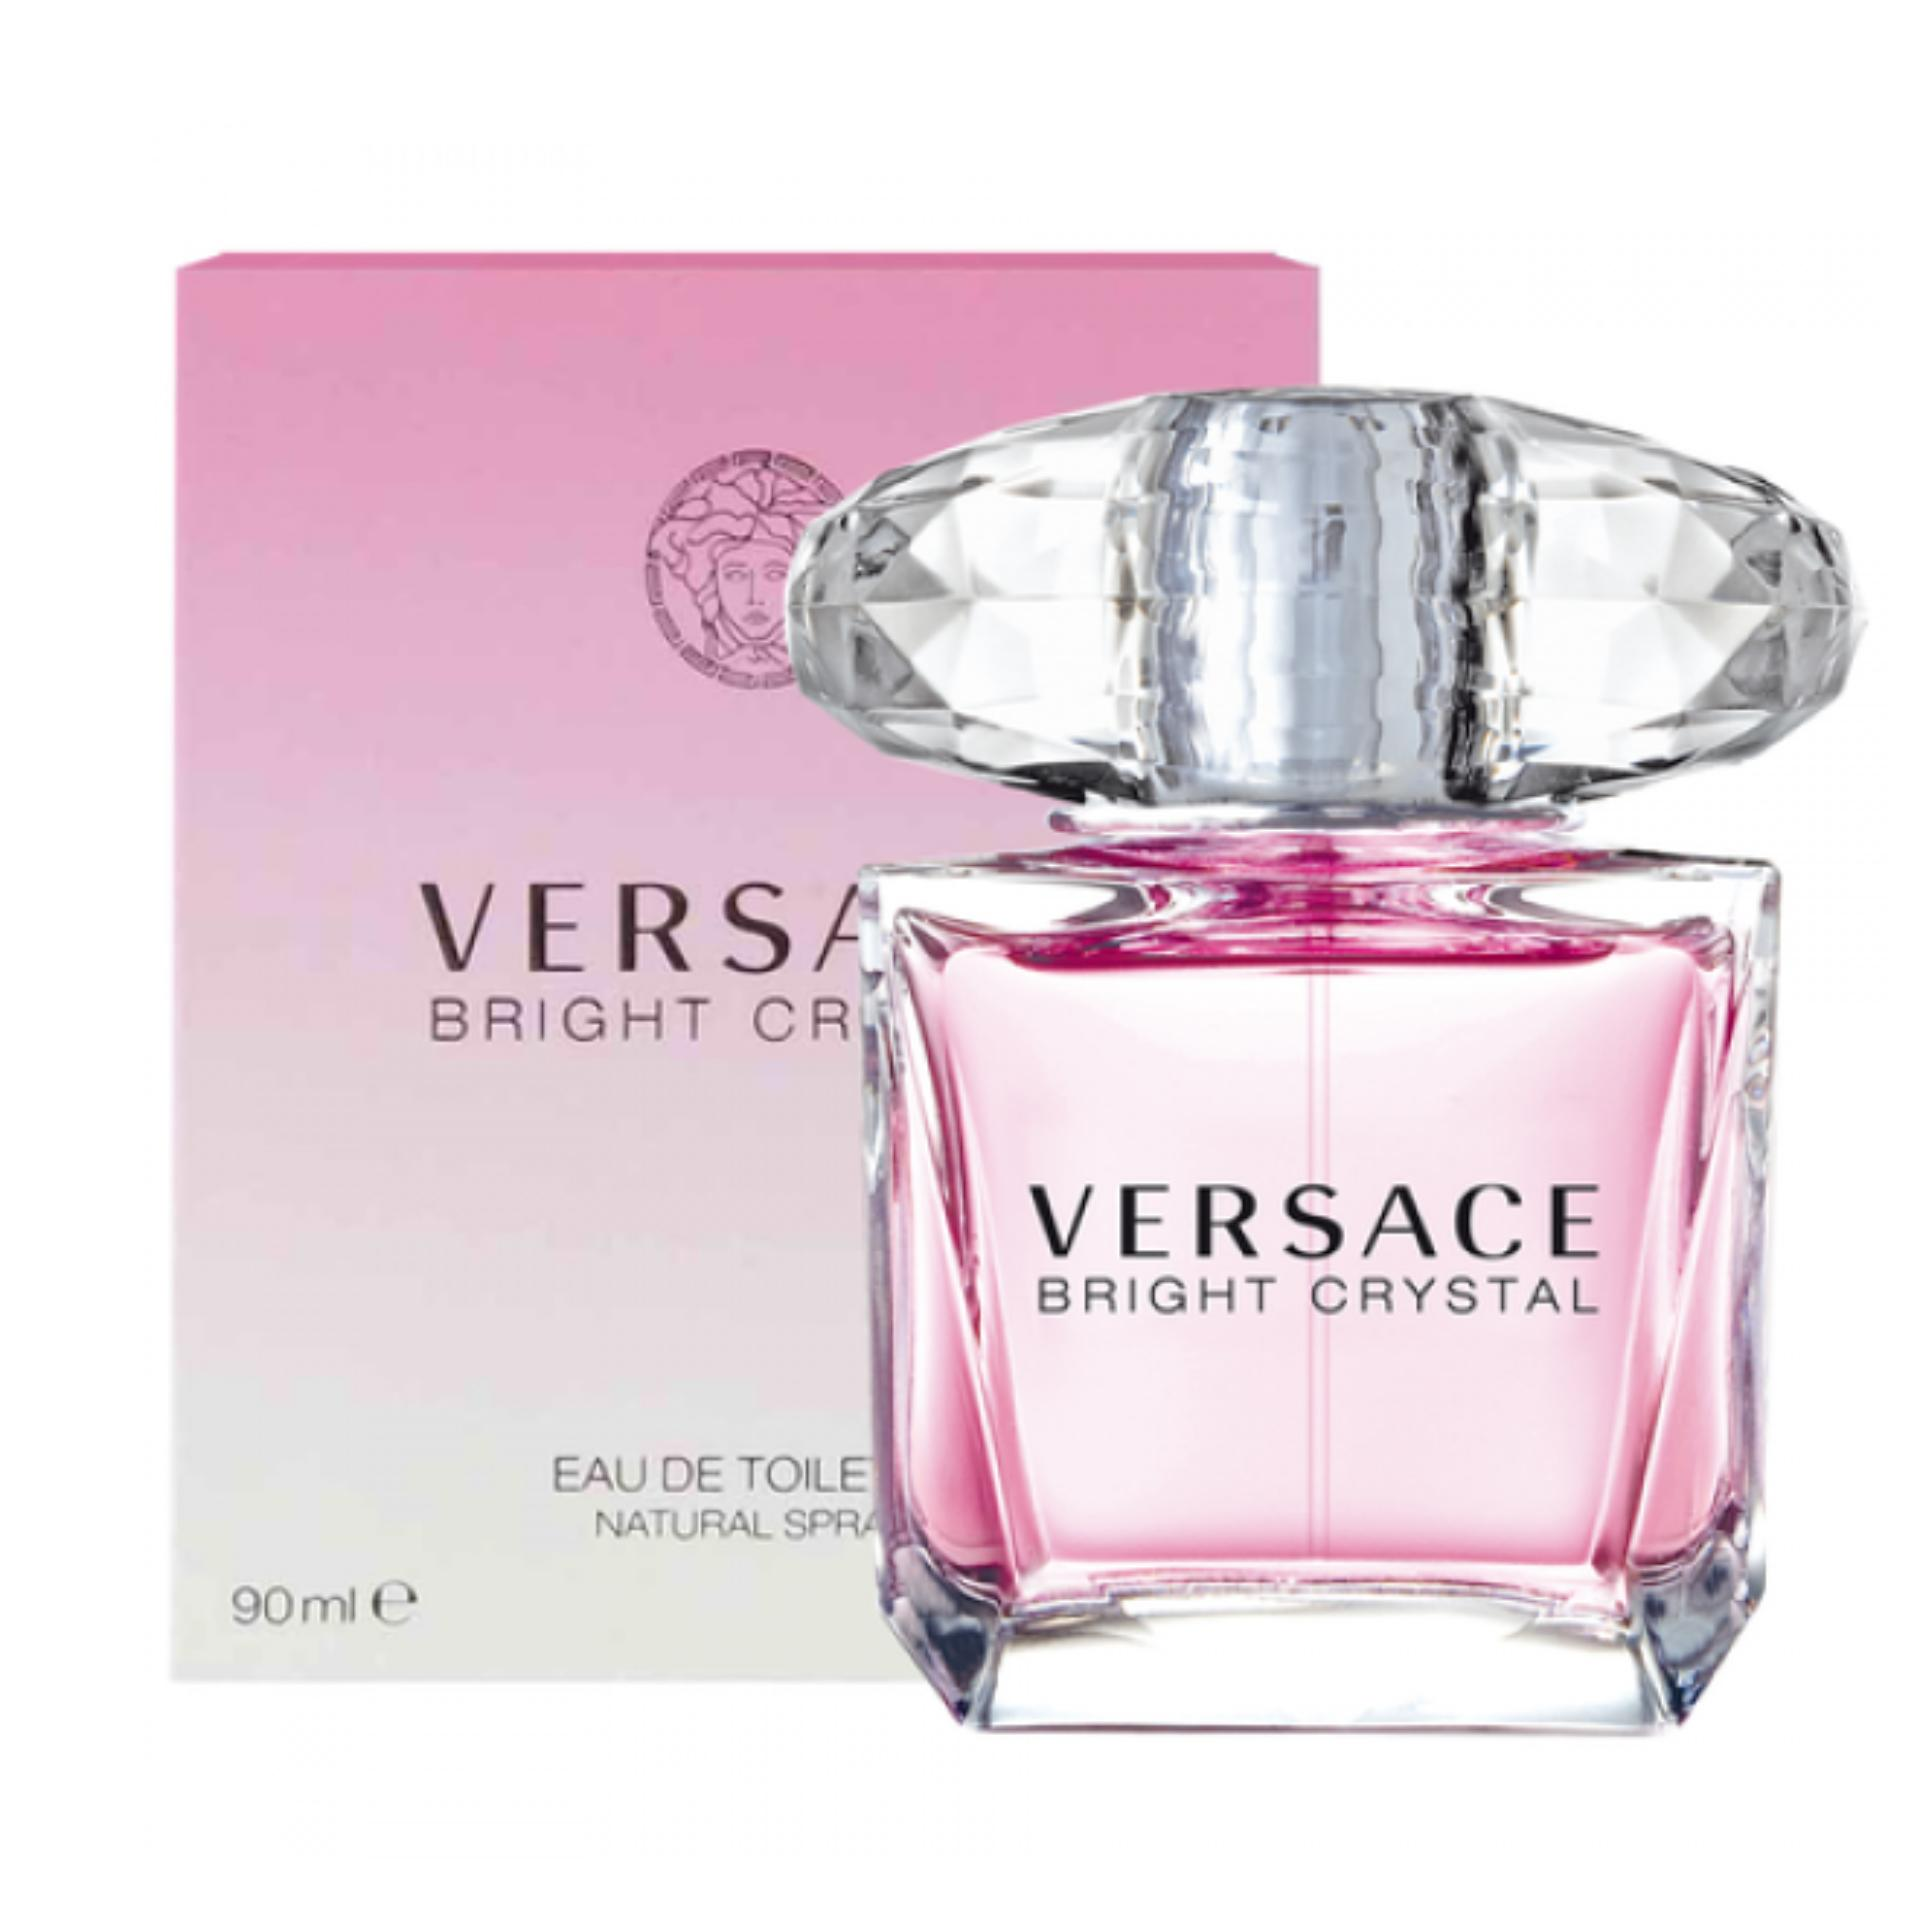 Versace Bright Crystal Eau De Toilette for Women 90ml product preview, discount at cheapest price